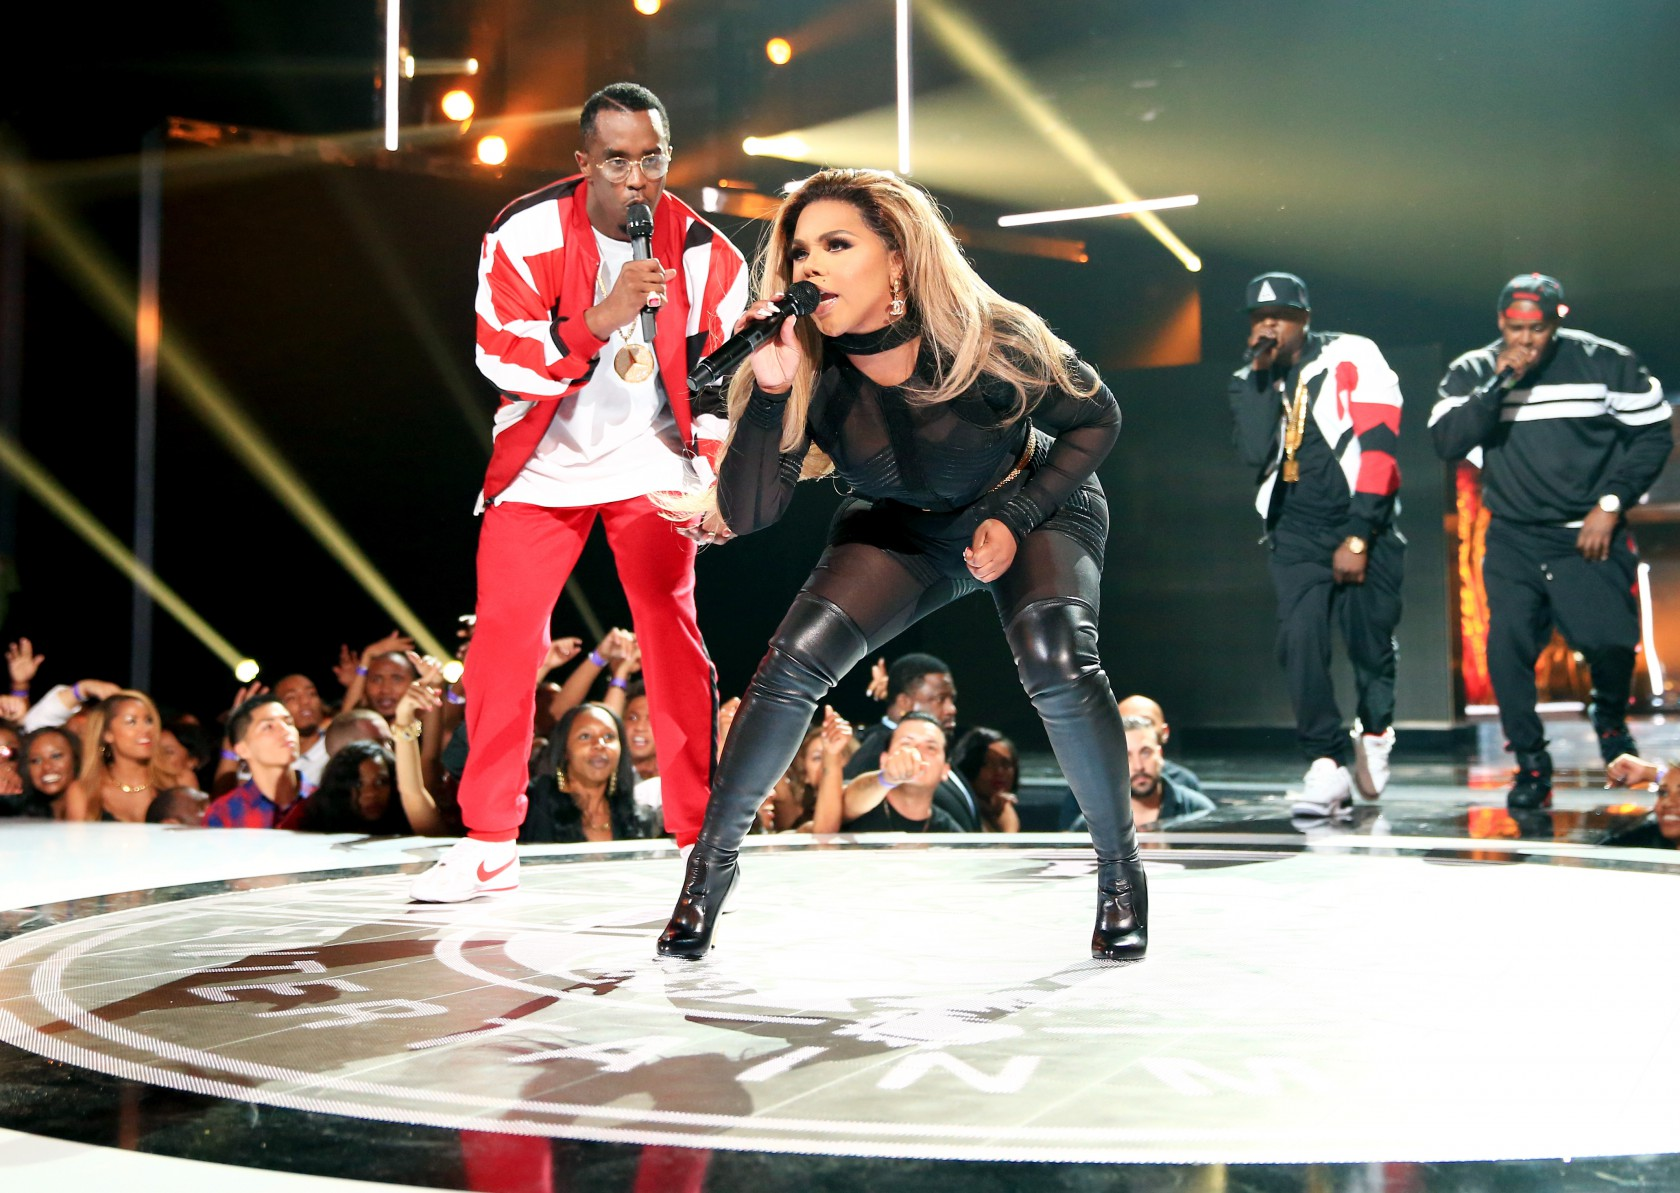 Tamar Braxton and K. Michelle Squash Fued, Set to Perform